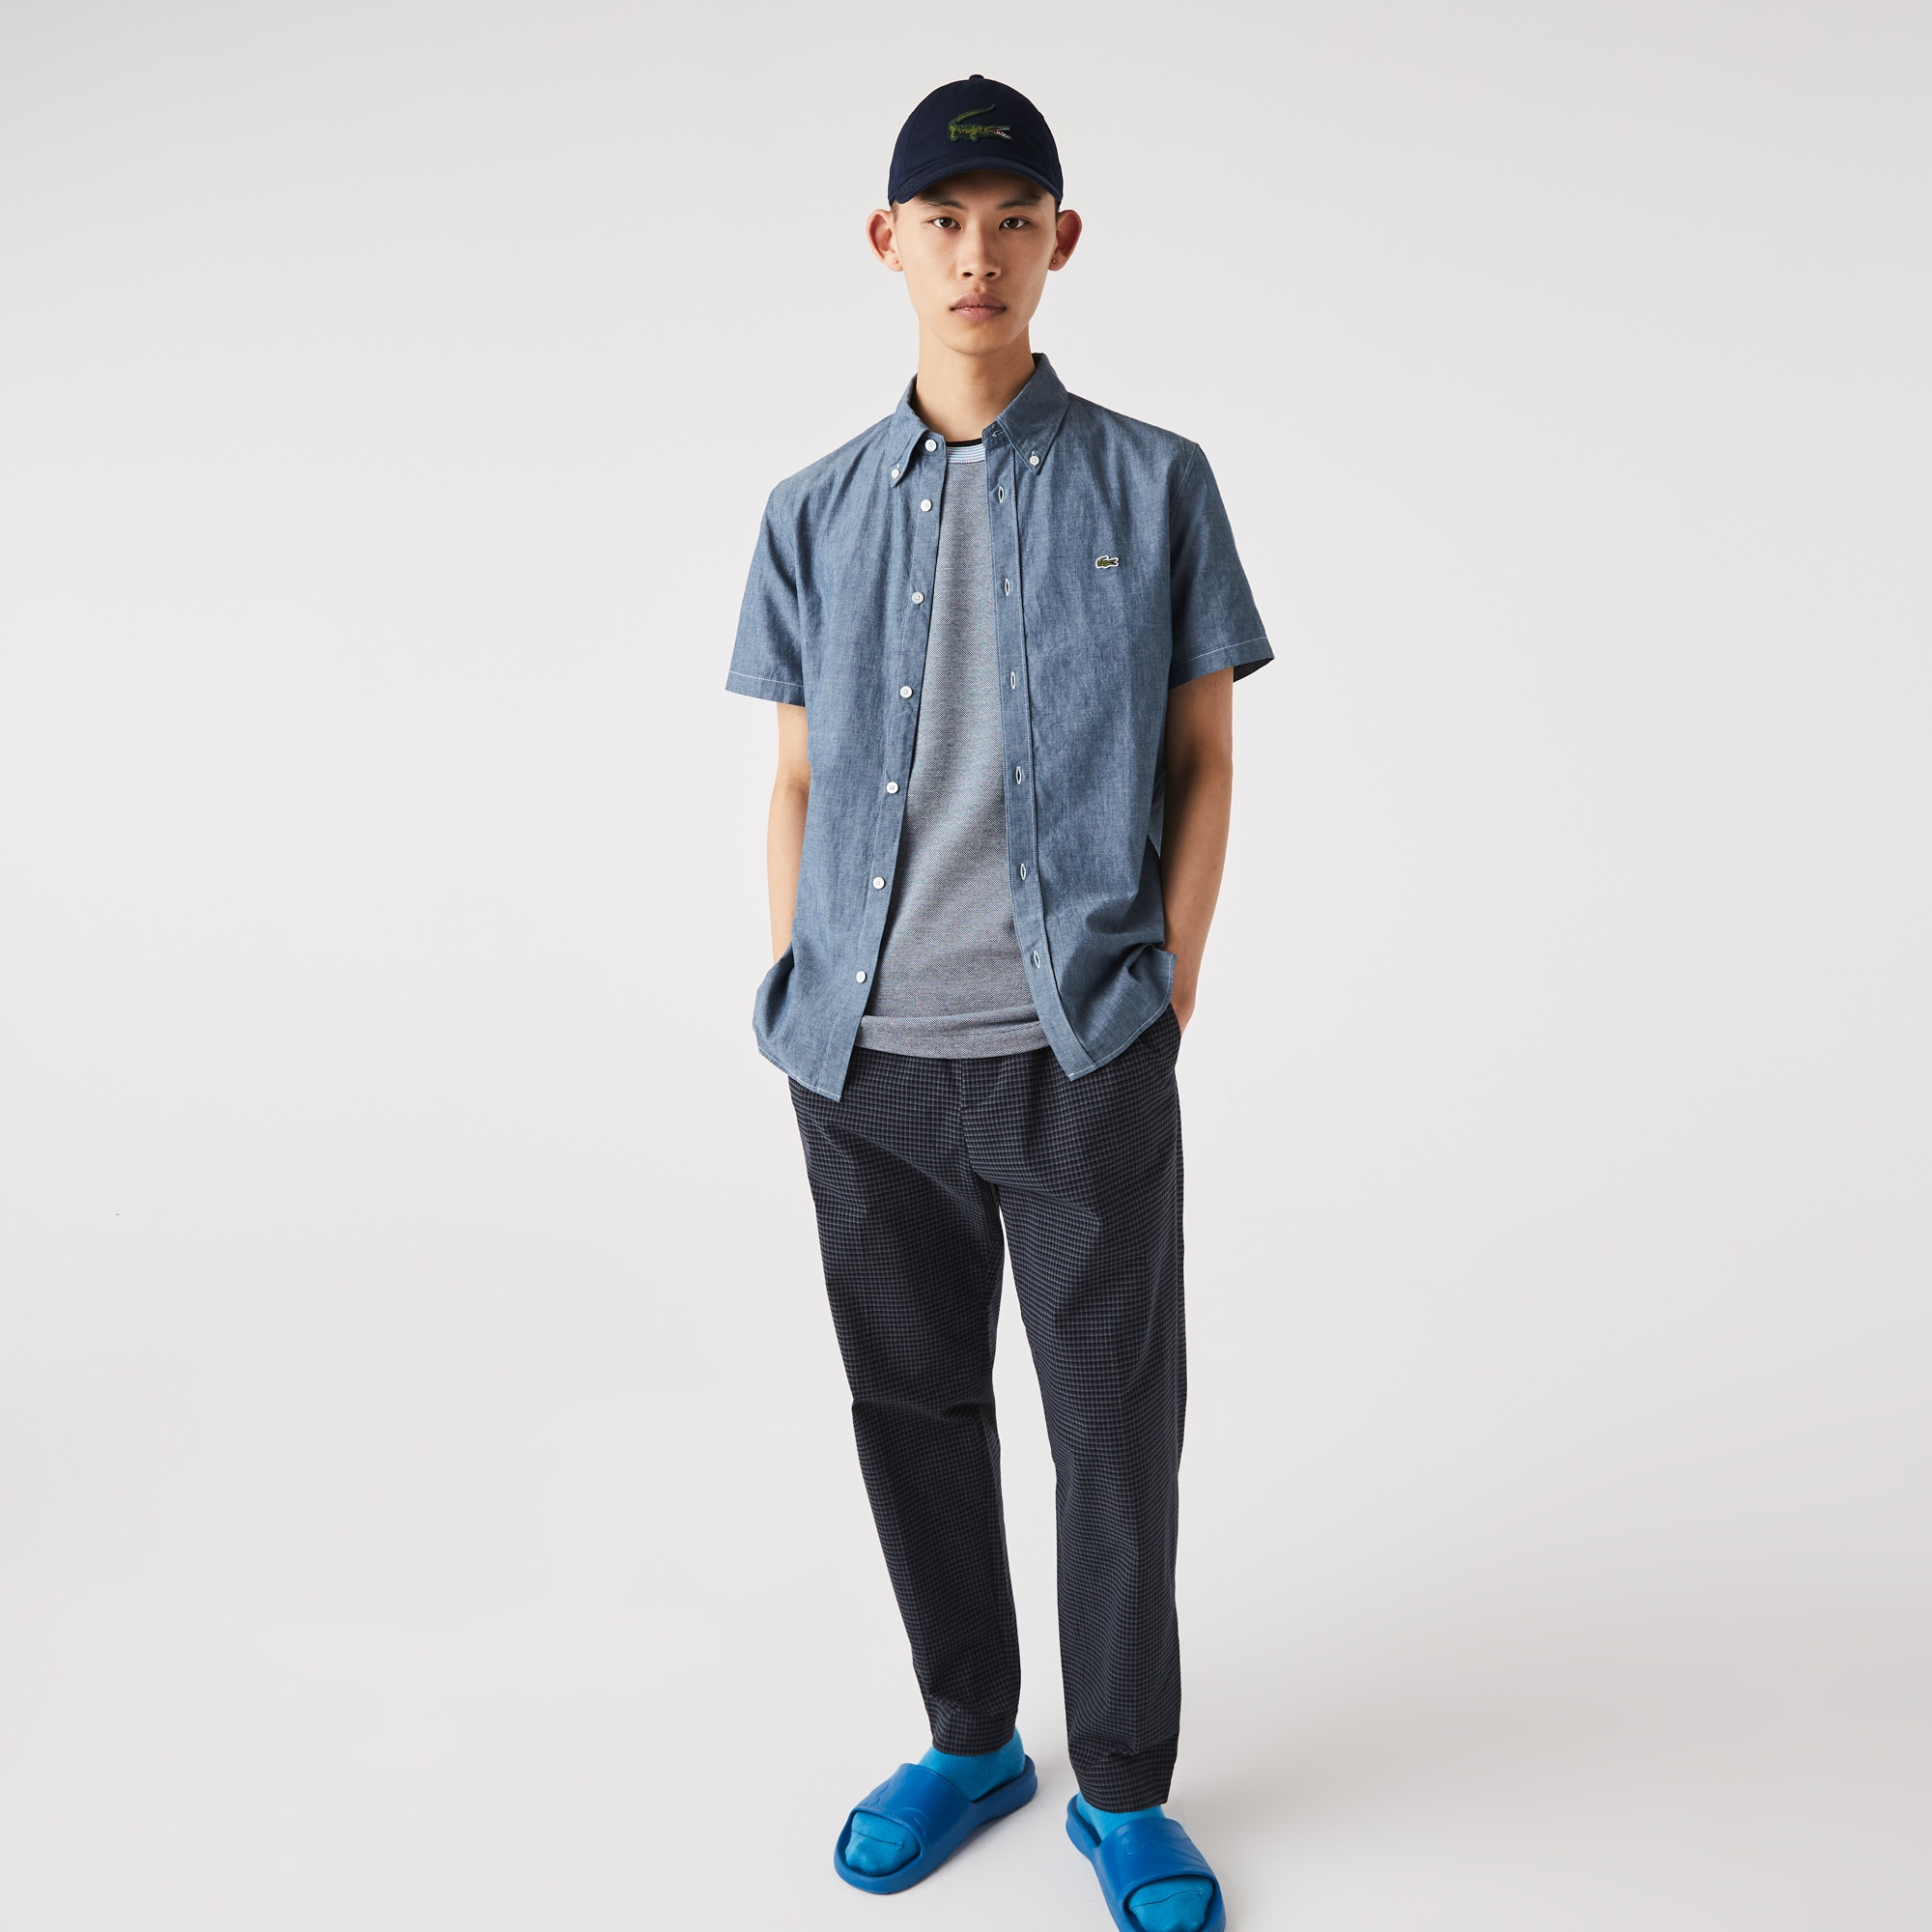 라코스테 Lacoste Mens Slim Fit Cotton Chambray Shirt,Blue CDZ